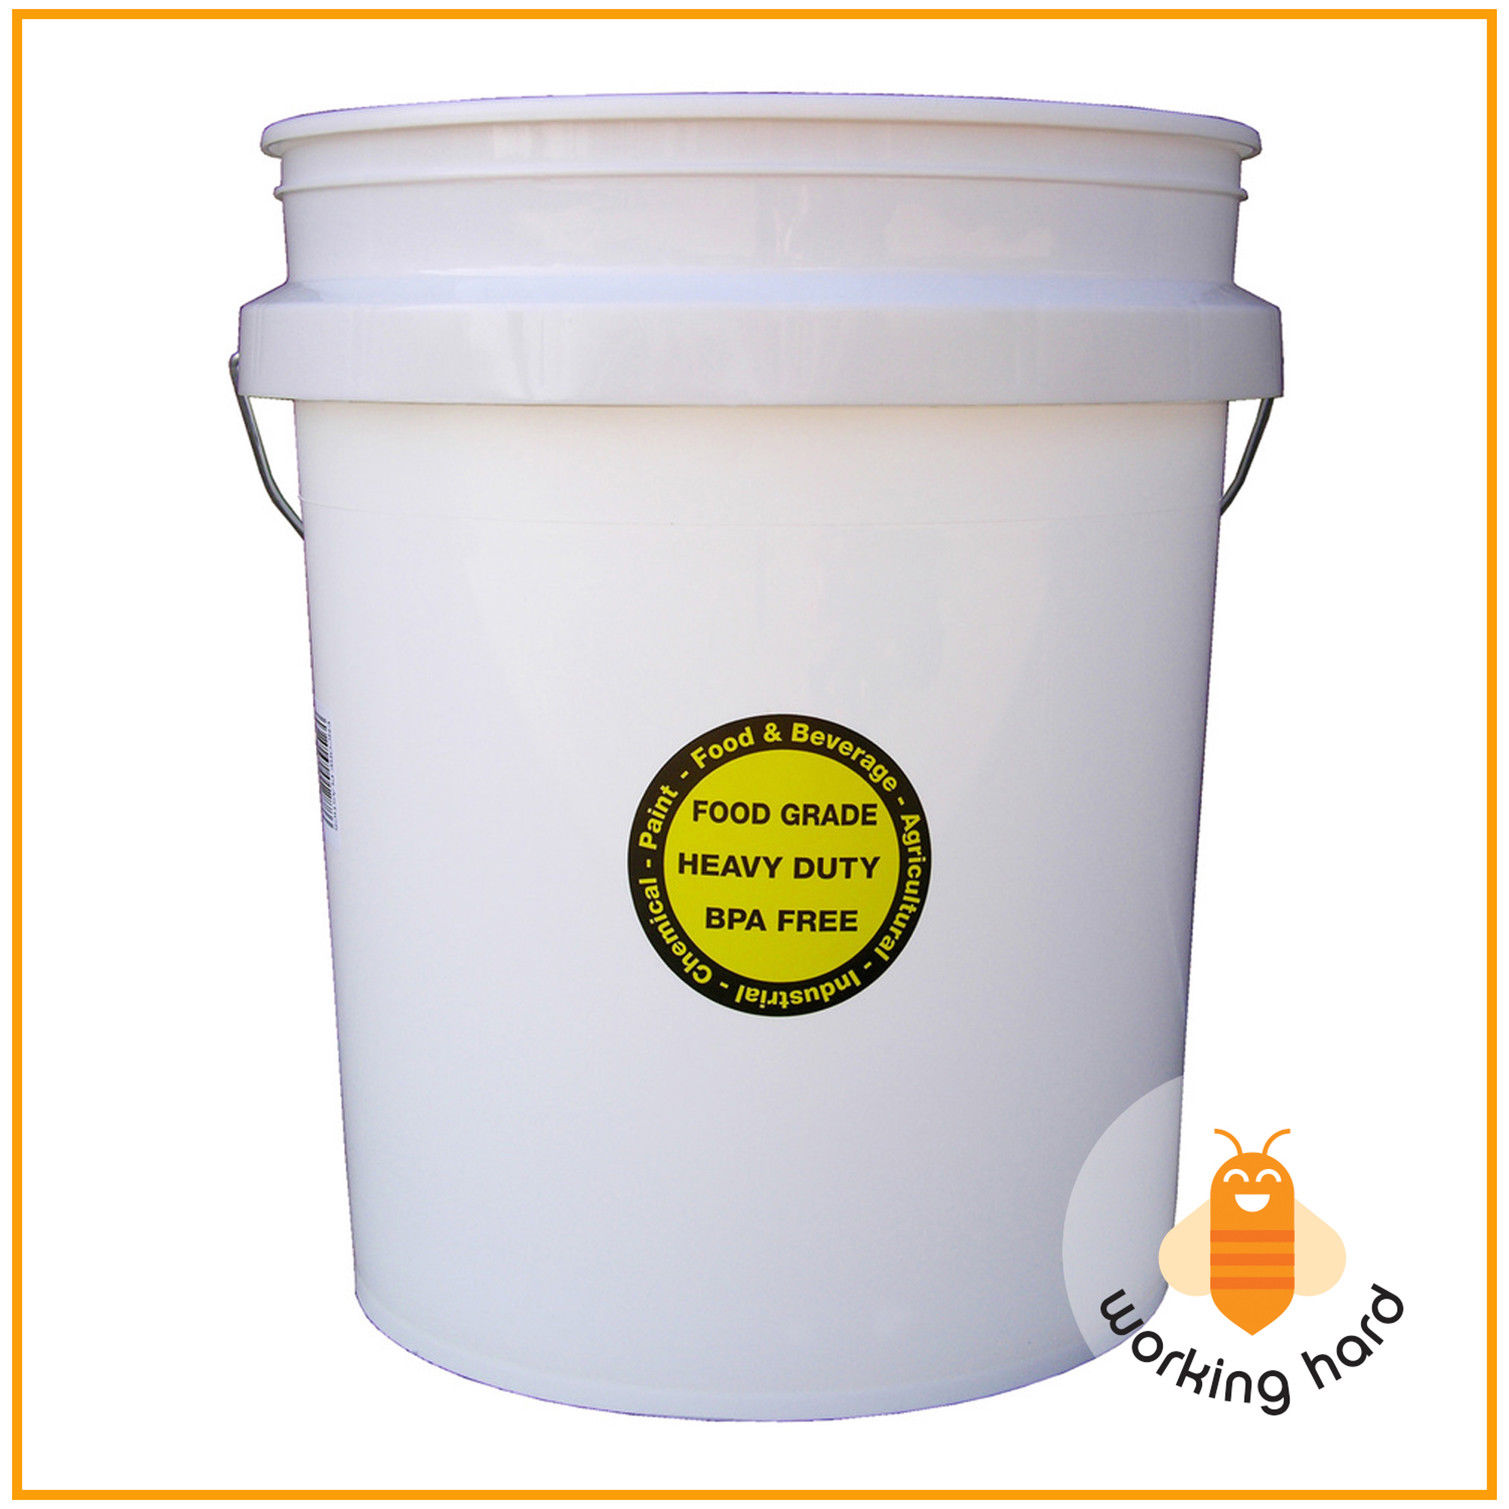 COMMERCIAL PLASTIC BUCKET 5 Gallon Durable All Purpose Food Grade Paint Storage 1